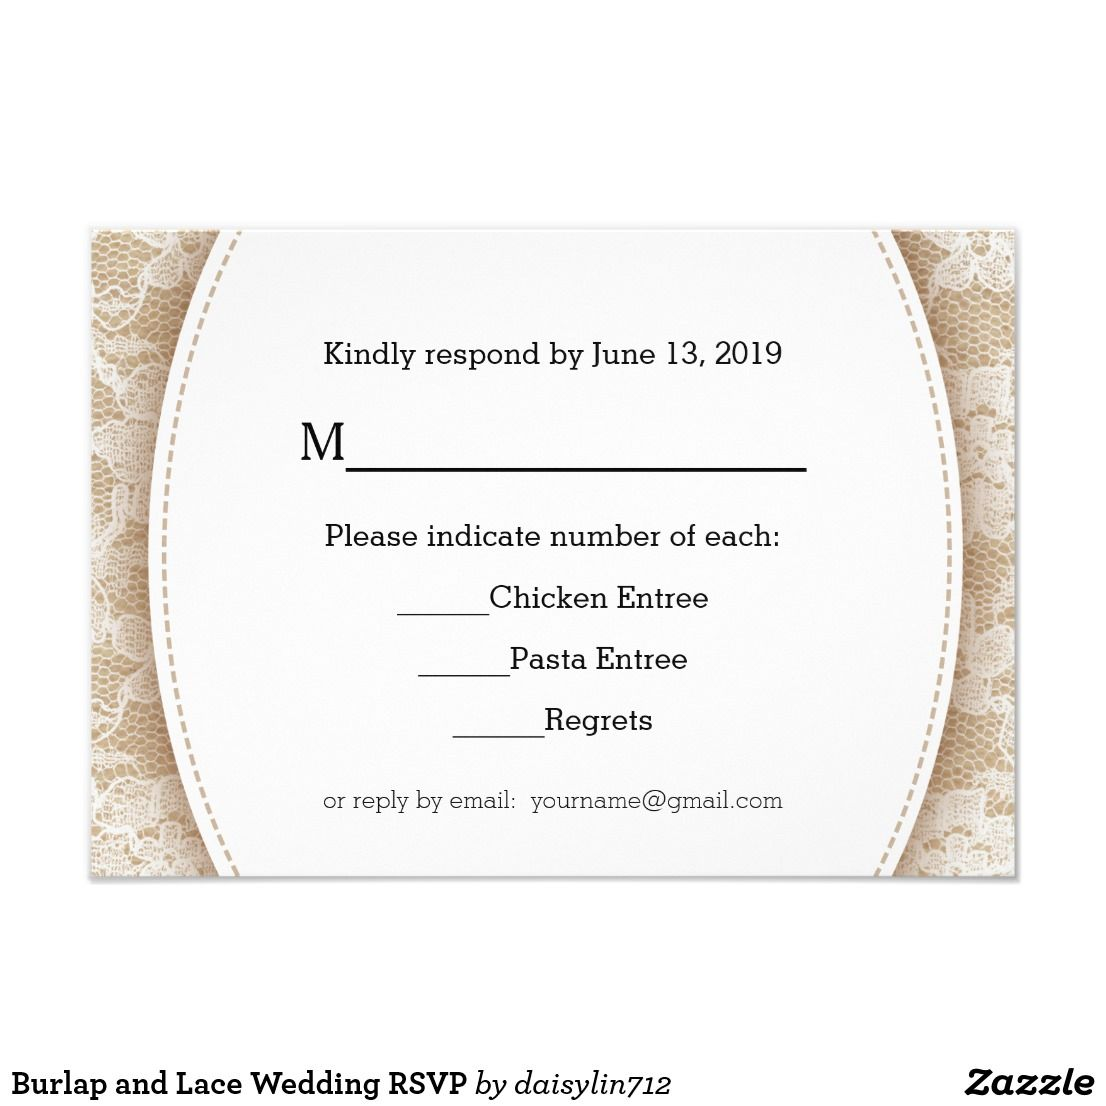 Burlap and lace wedding rsvp wedding invitations favors and